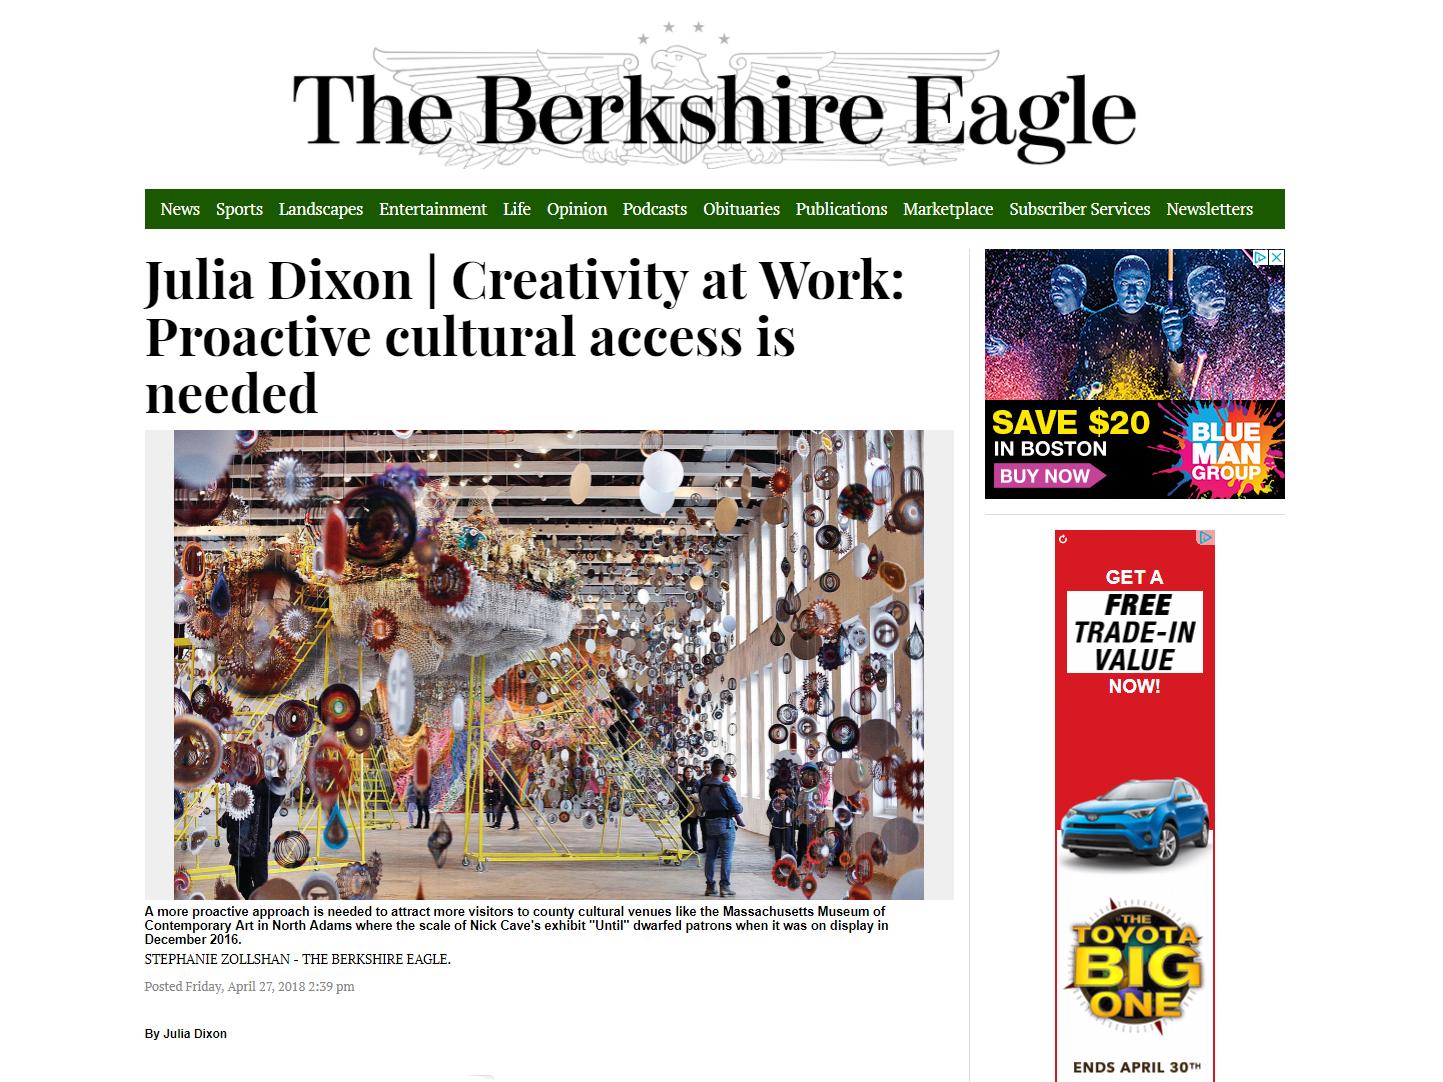 THE BERKSHIRE EAGLE  April 29, 2018 Creative Economy Column